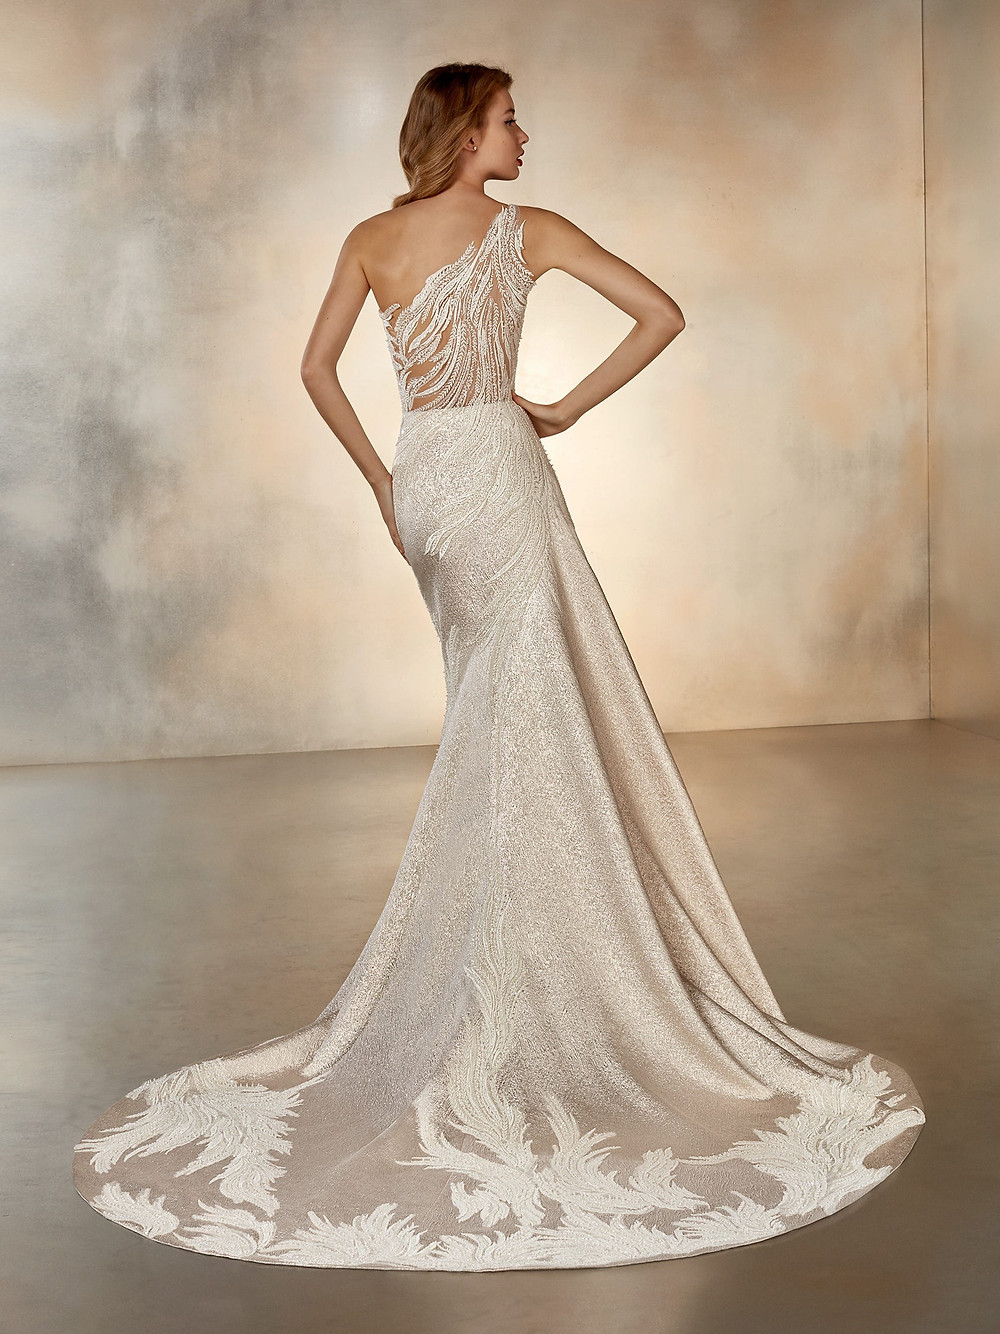 A Pronovias champagne color one shoulder wedding dress with plenty of sparkle and shine and floral embellishments